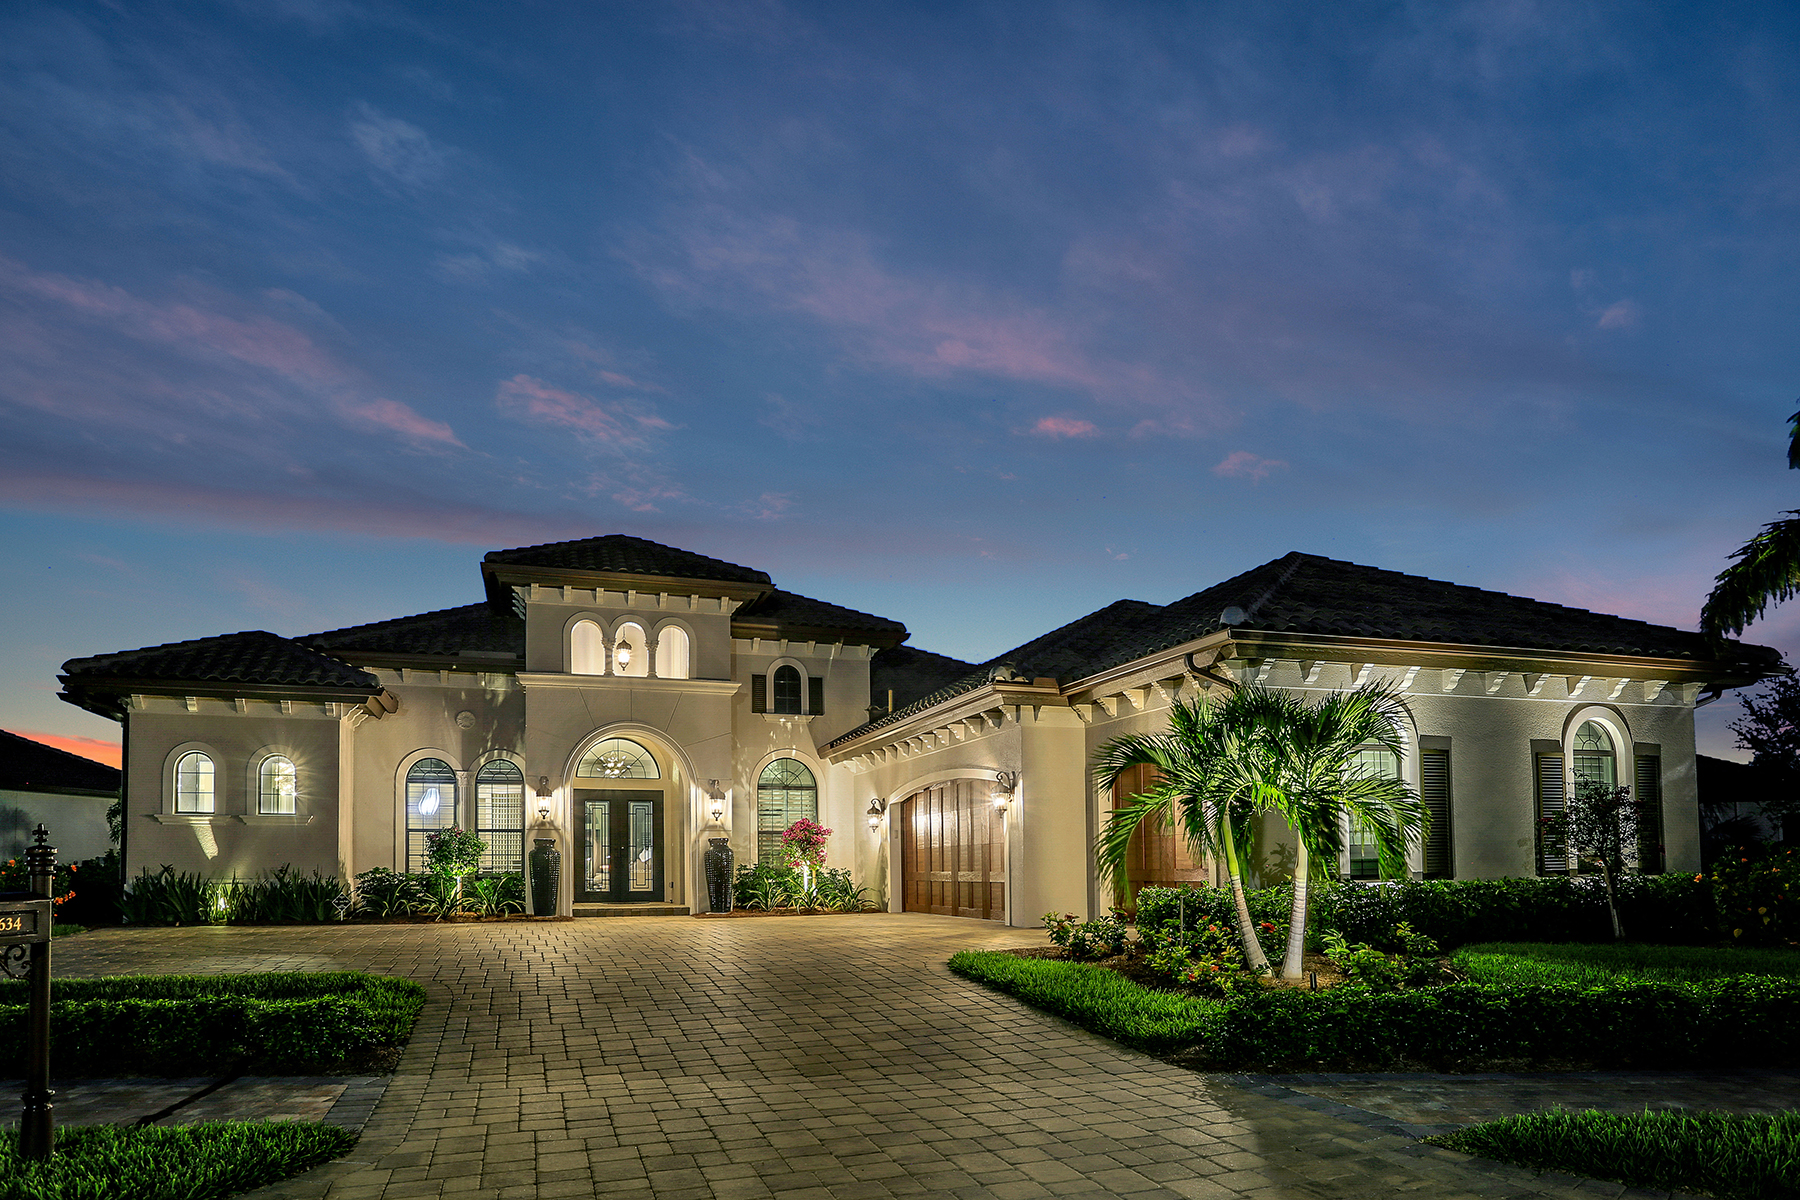 Single Family Home for Sale at LELY RESORT - LAKOYA 6634 Costa Cir, Naples, Florida 34113 United States